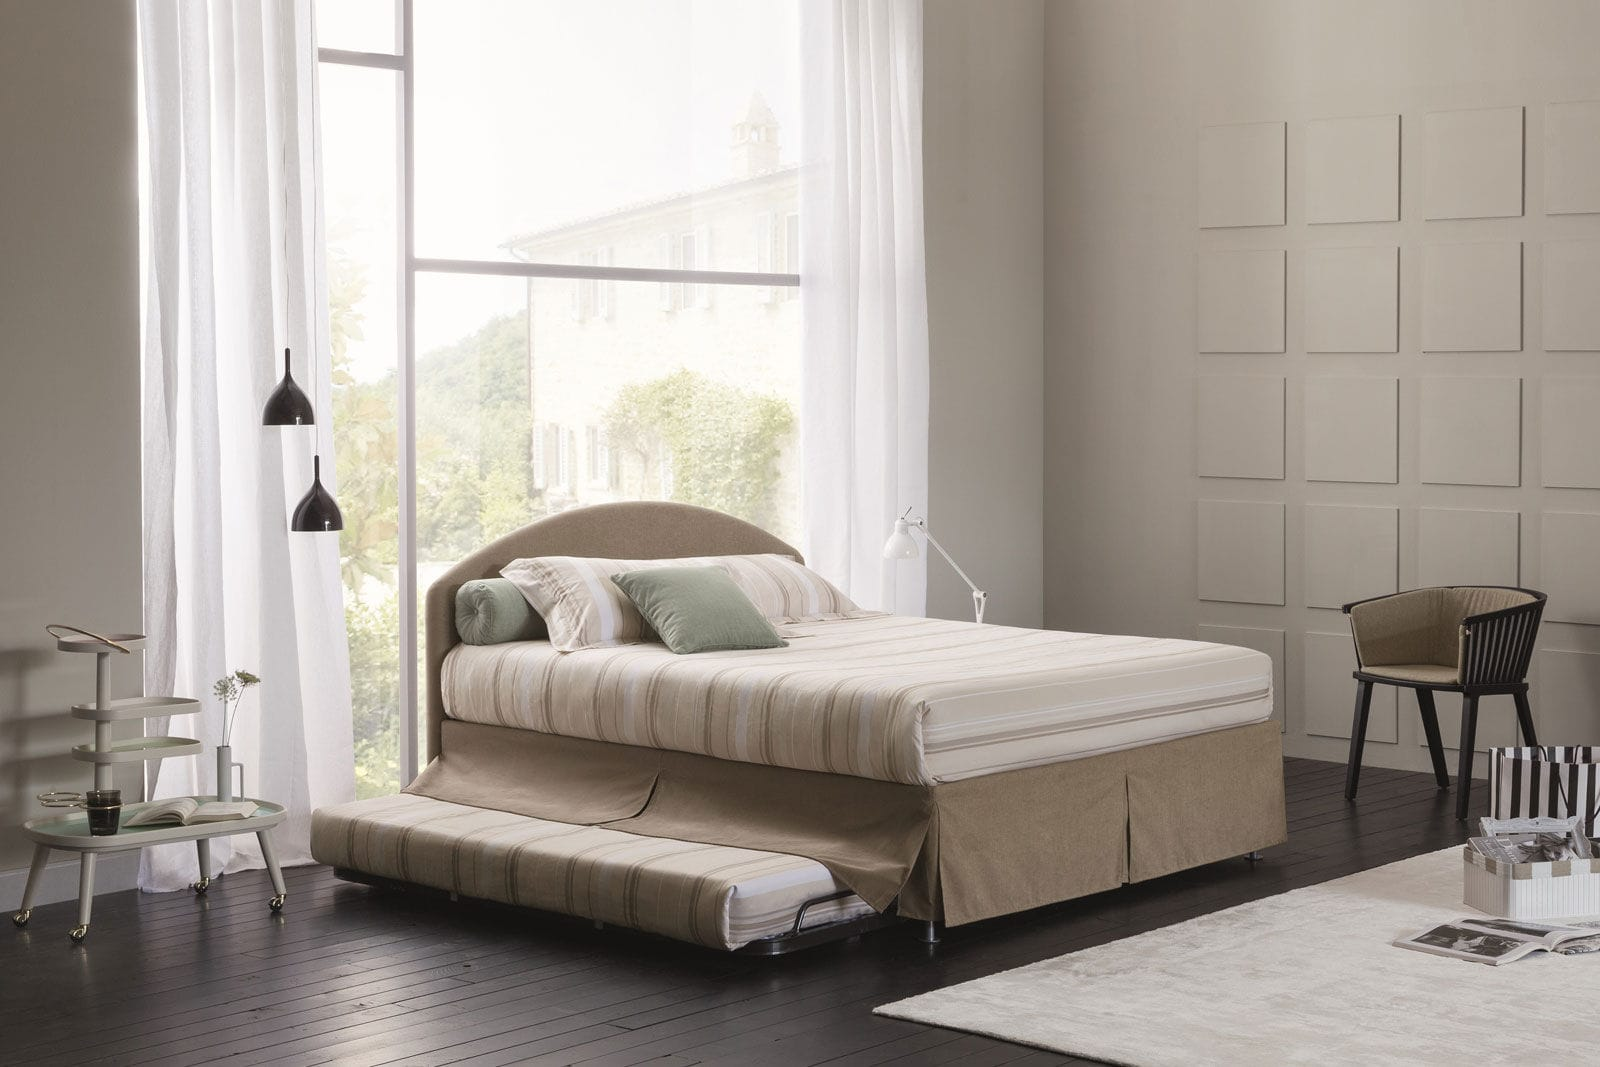 Picture of: Pull Out Bed Castle Combi Oggioni Double Contemporary Upholstered